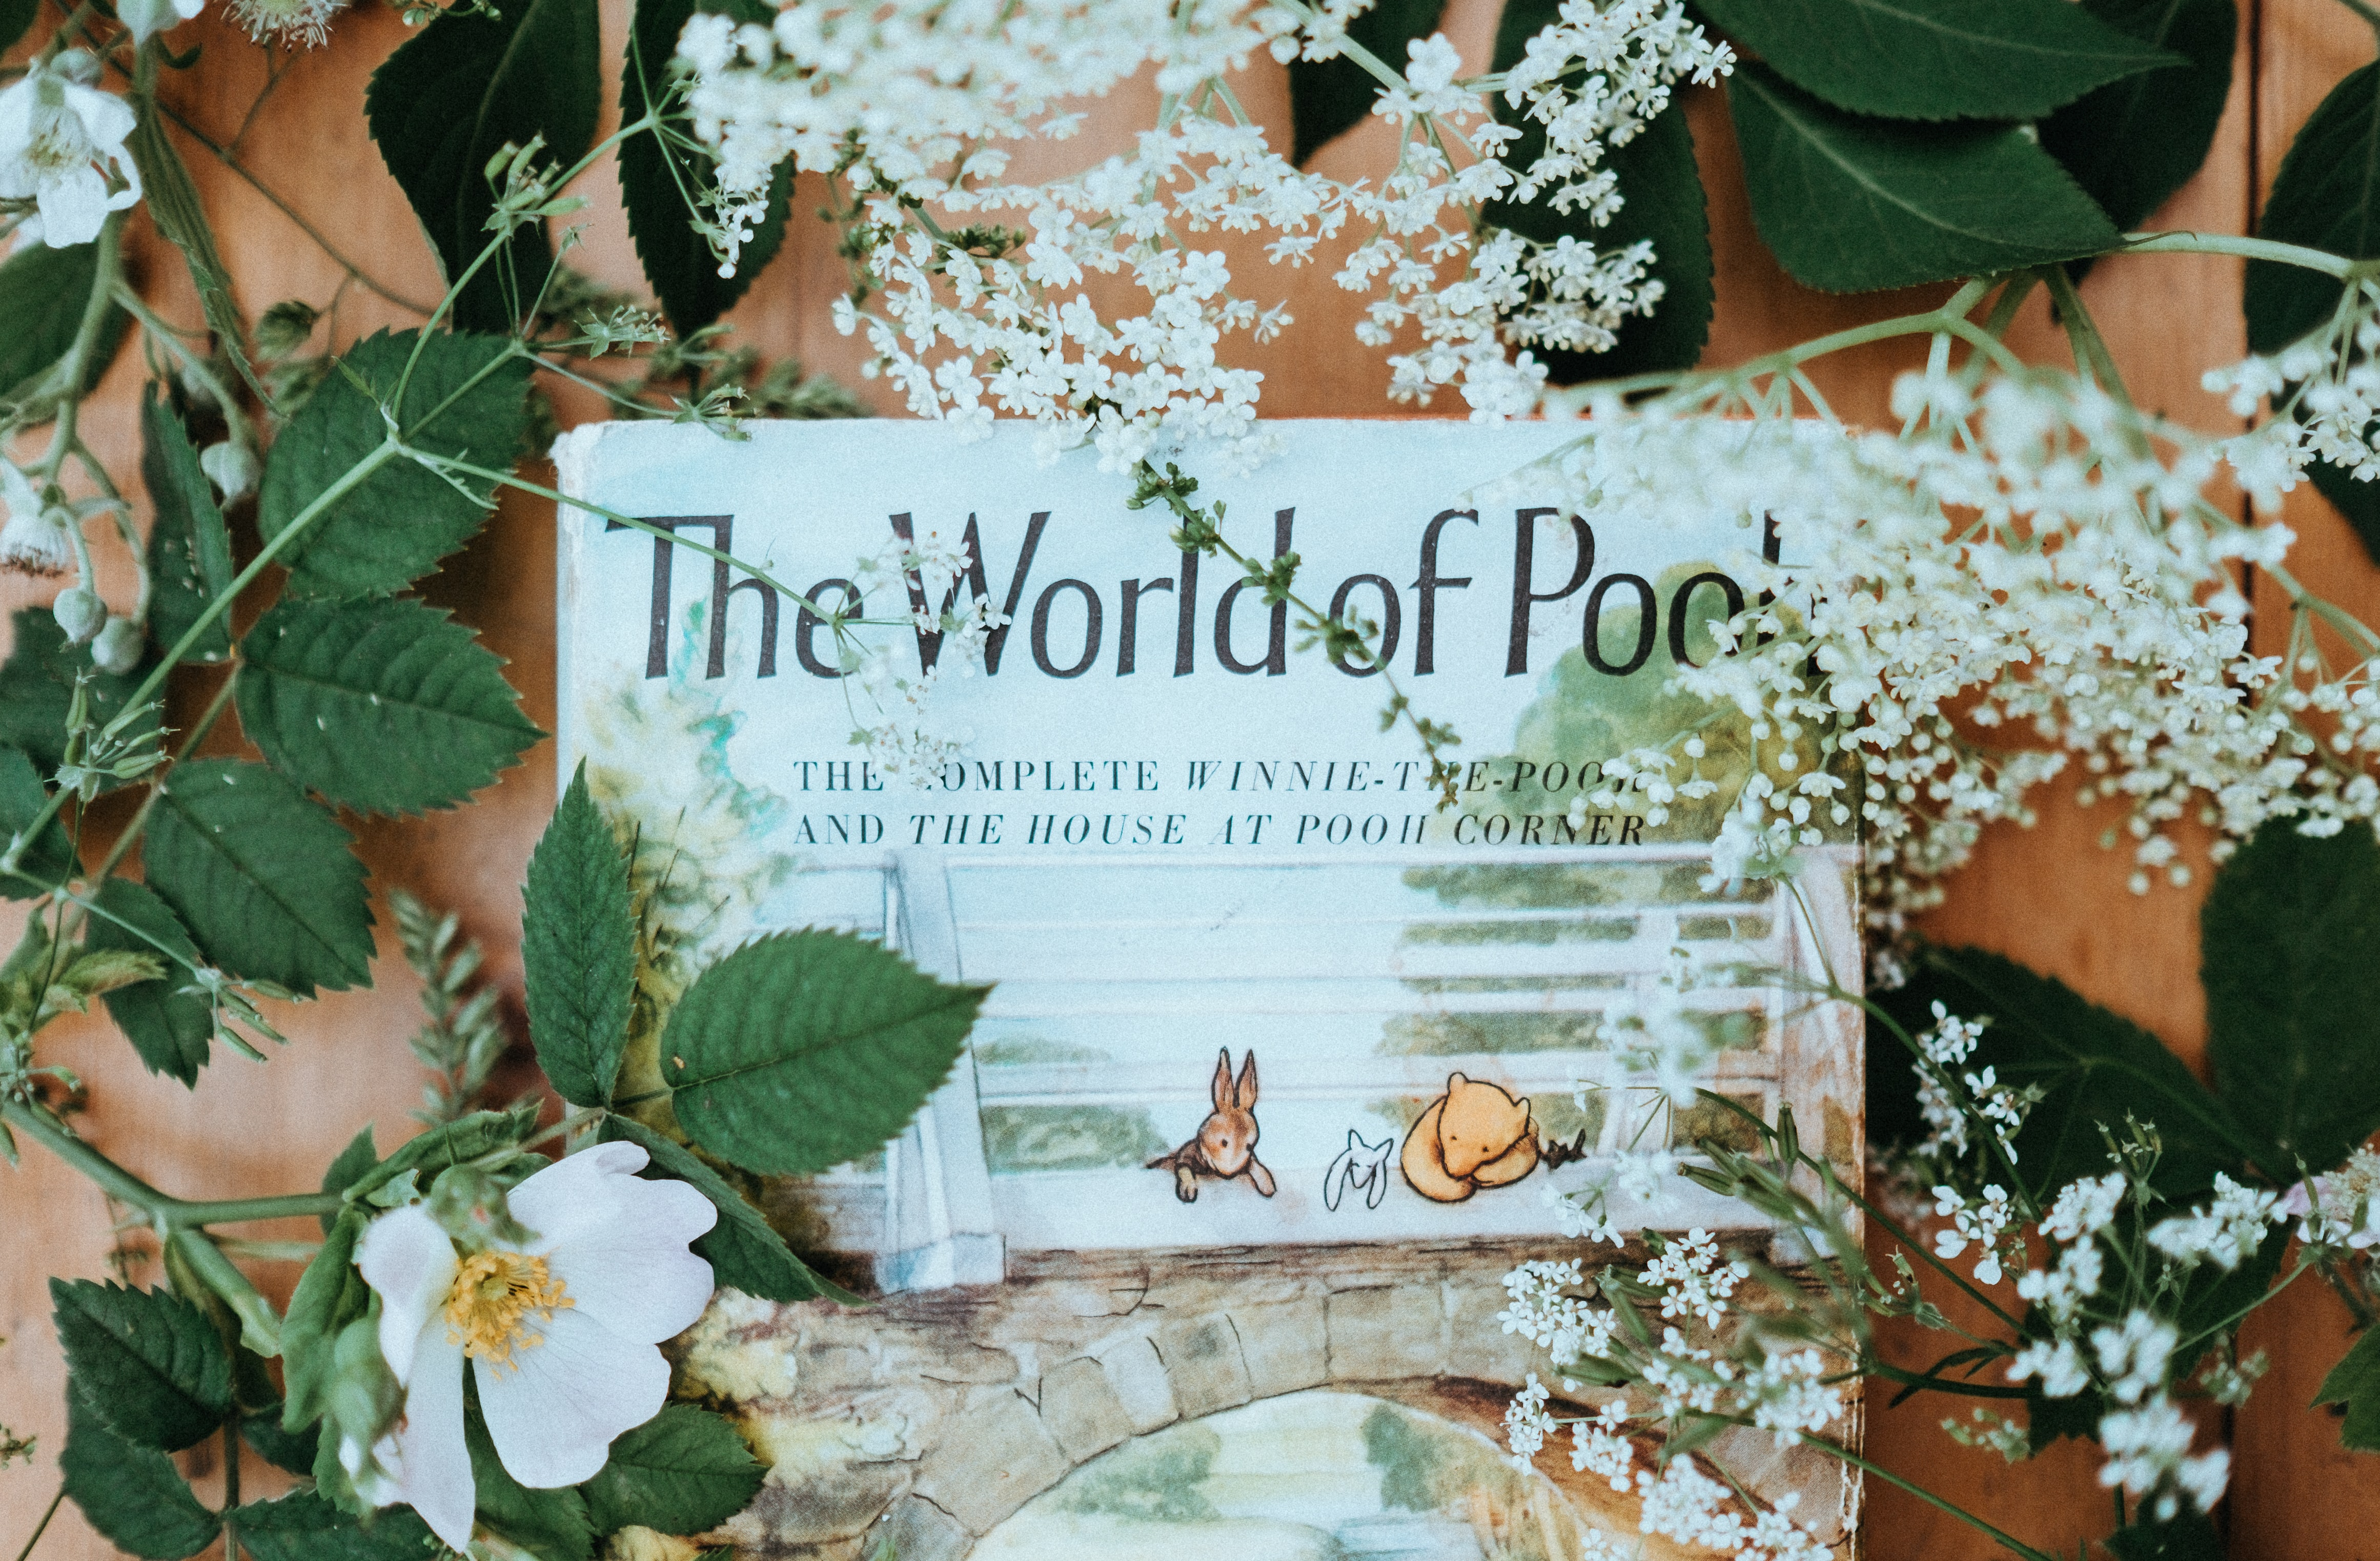 A Winnie-the-Pooh book surrounded by white flowers